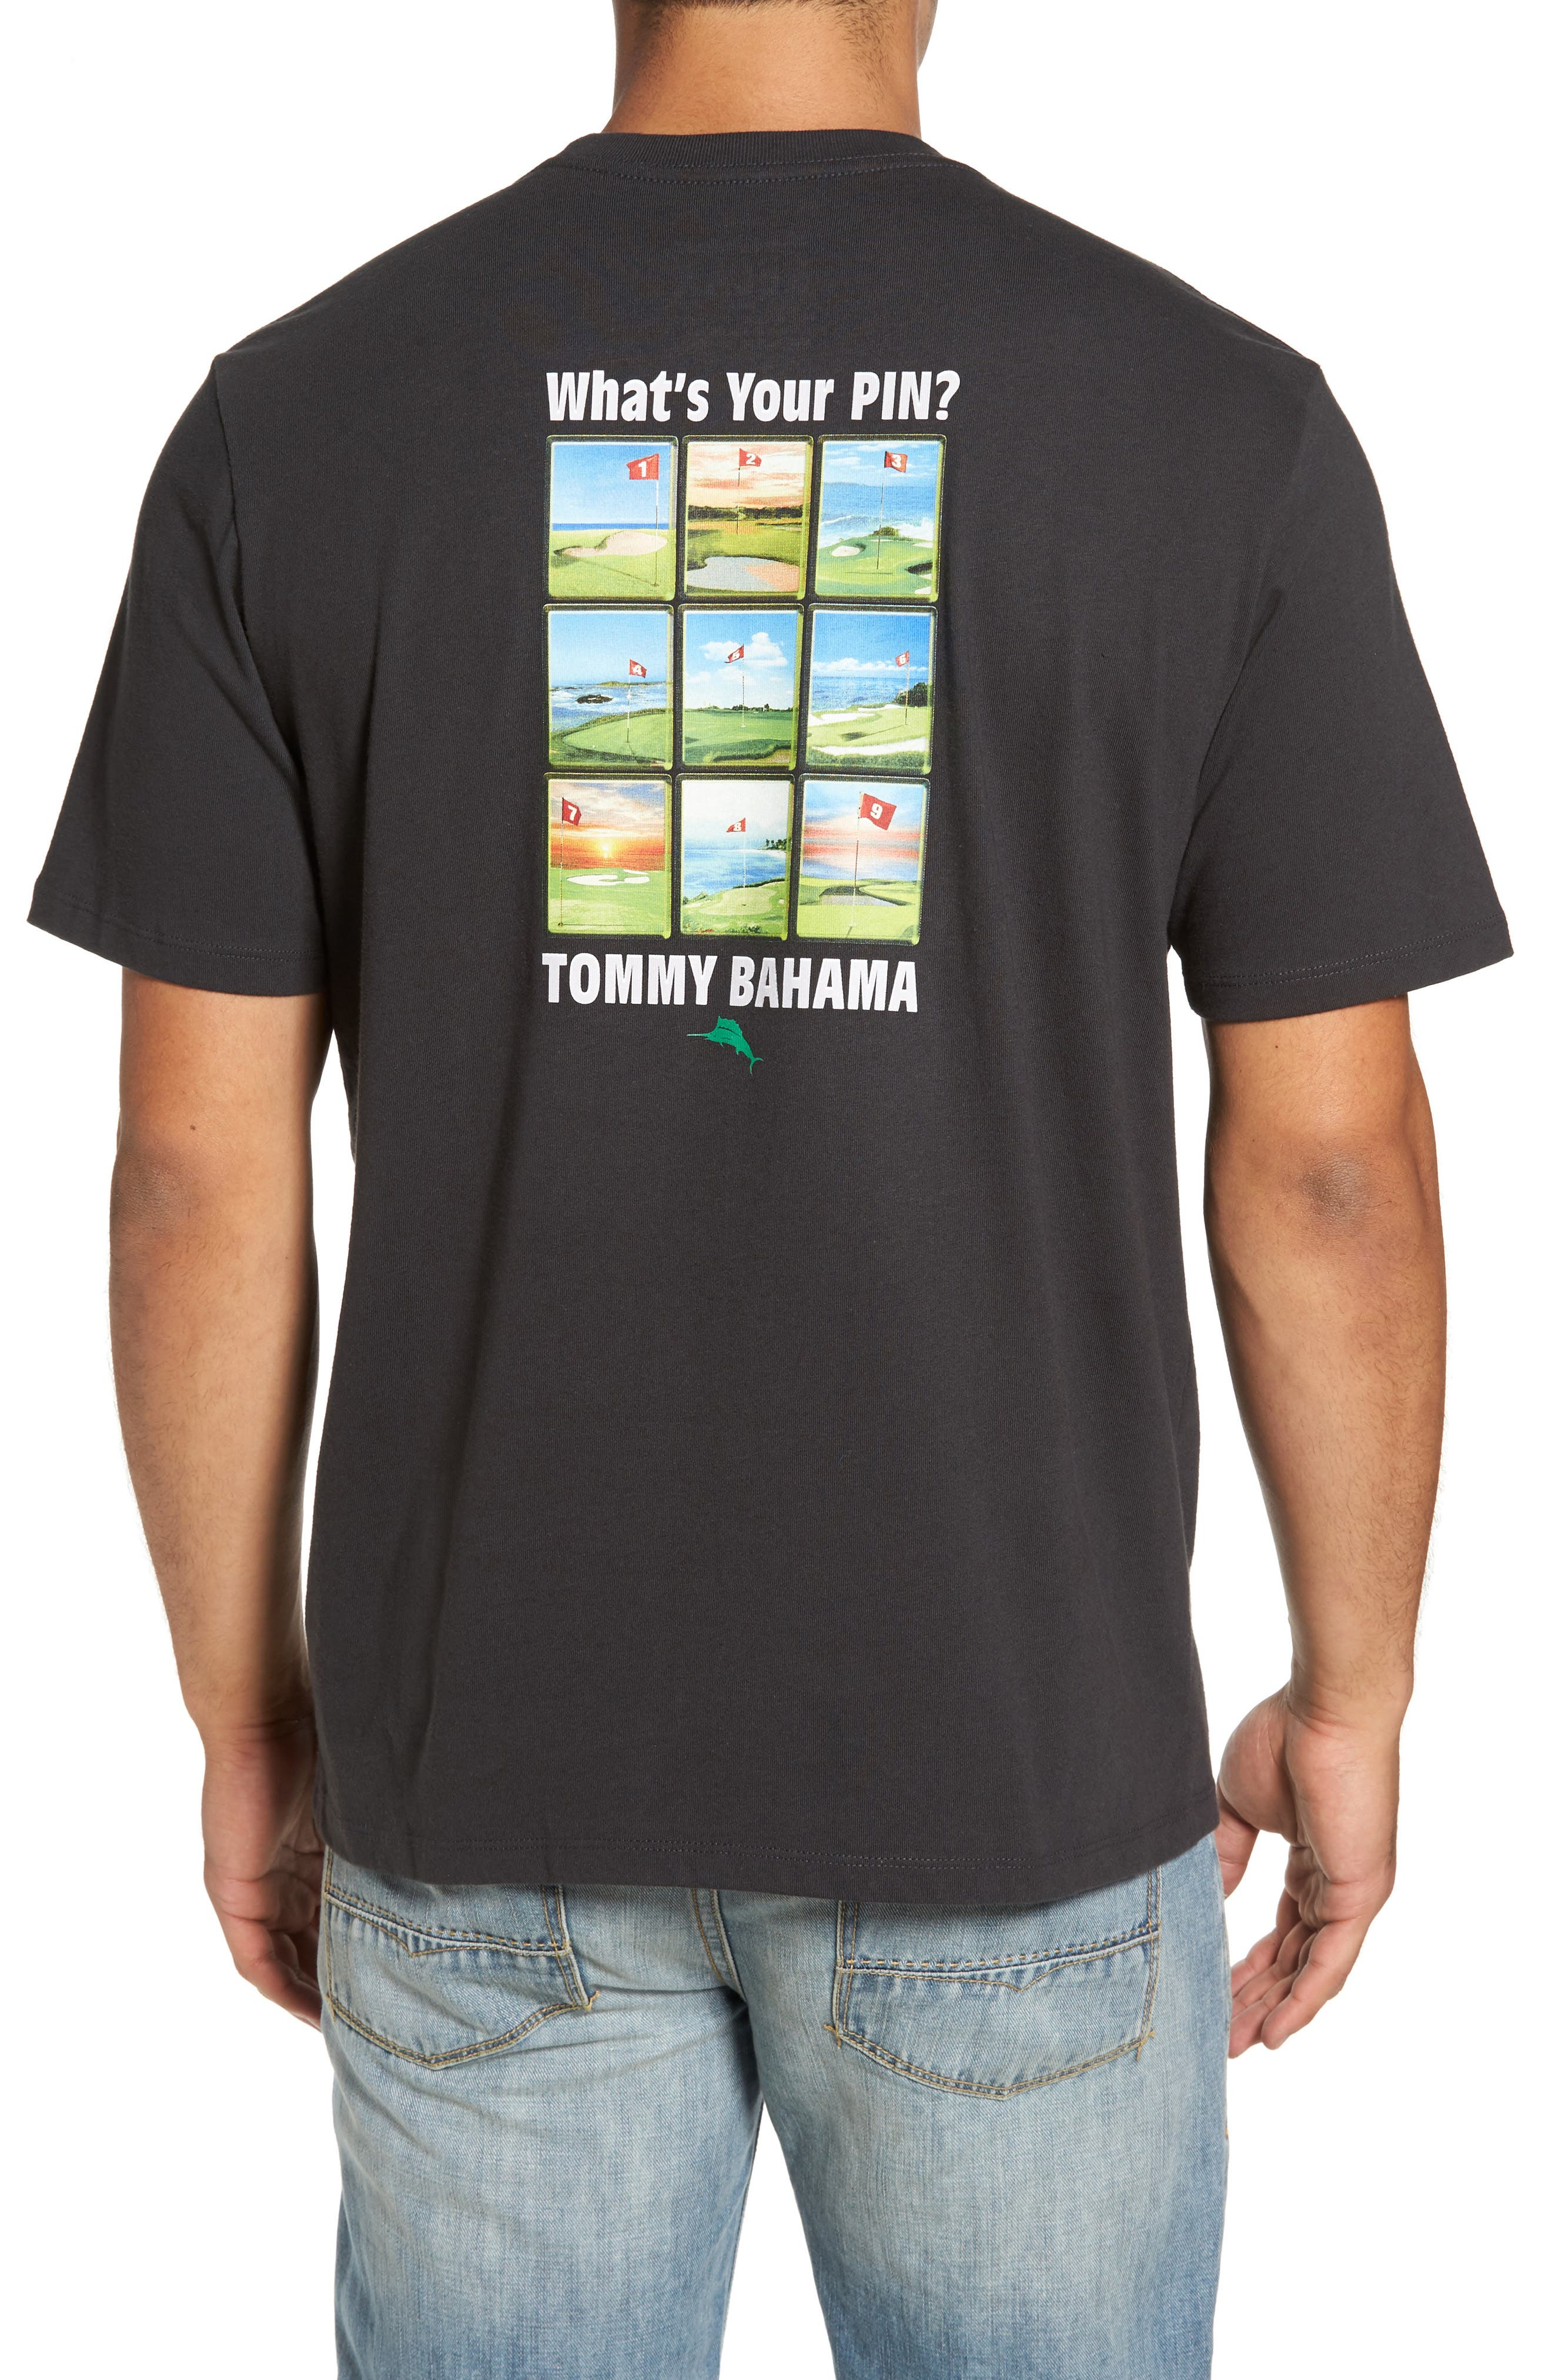 Tommy Bahama What's Your Pin Graphic T-Shirt